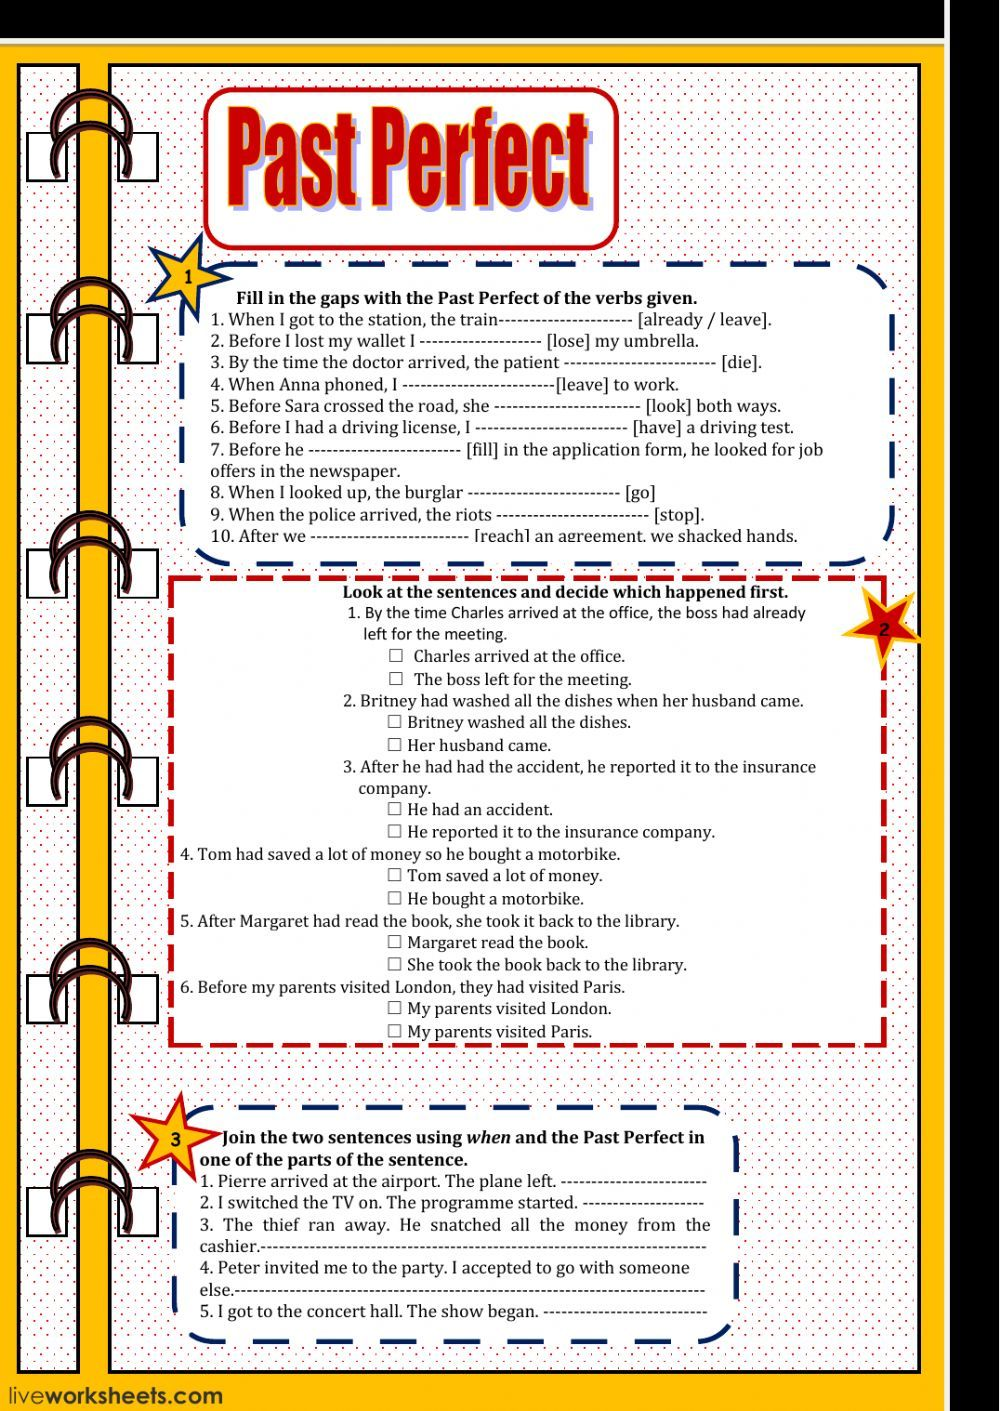 Past Perfect interactive and downloadable worksheet. You